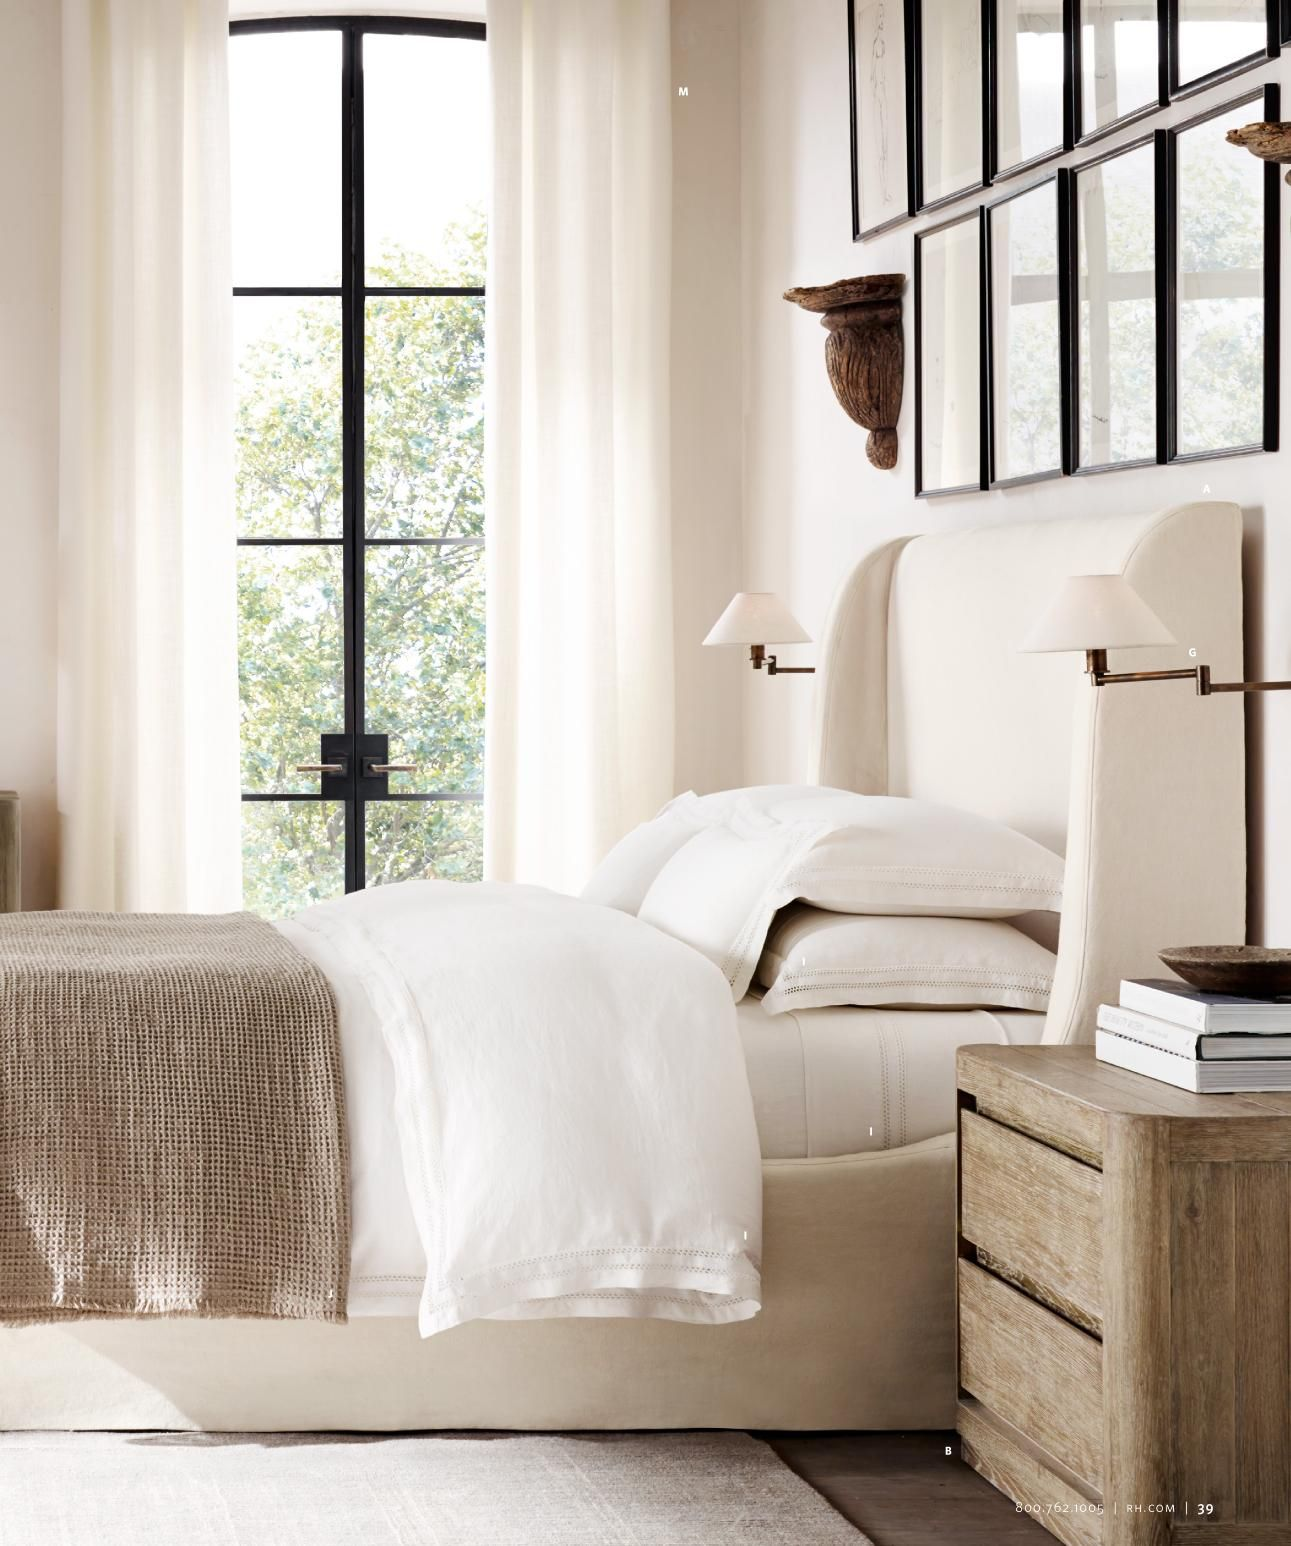 Restoration hardware bedroom - Restoration Hardware Has 2 New Catalogs Modern And Teens Both Great And Very Inspiring